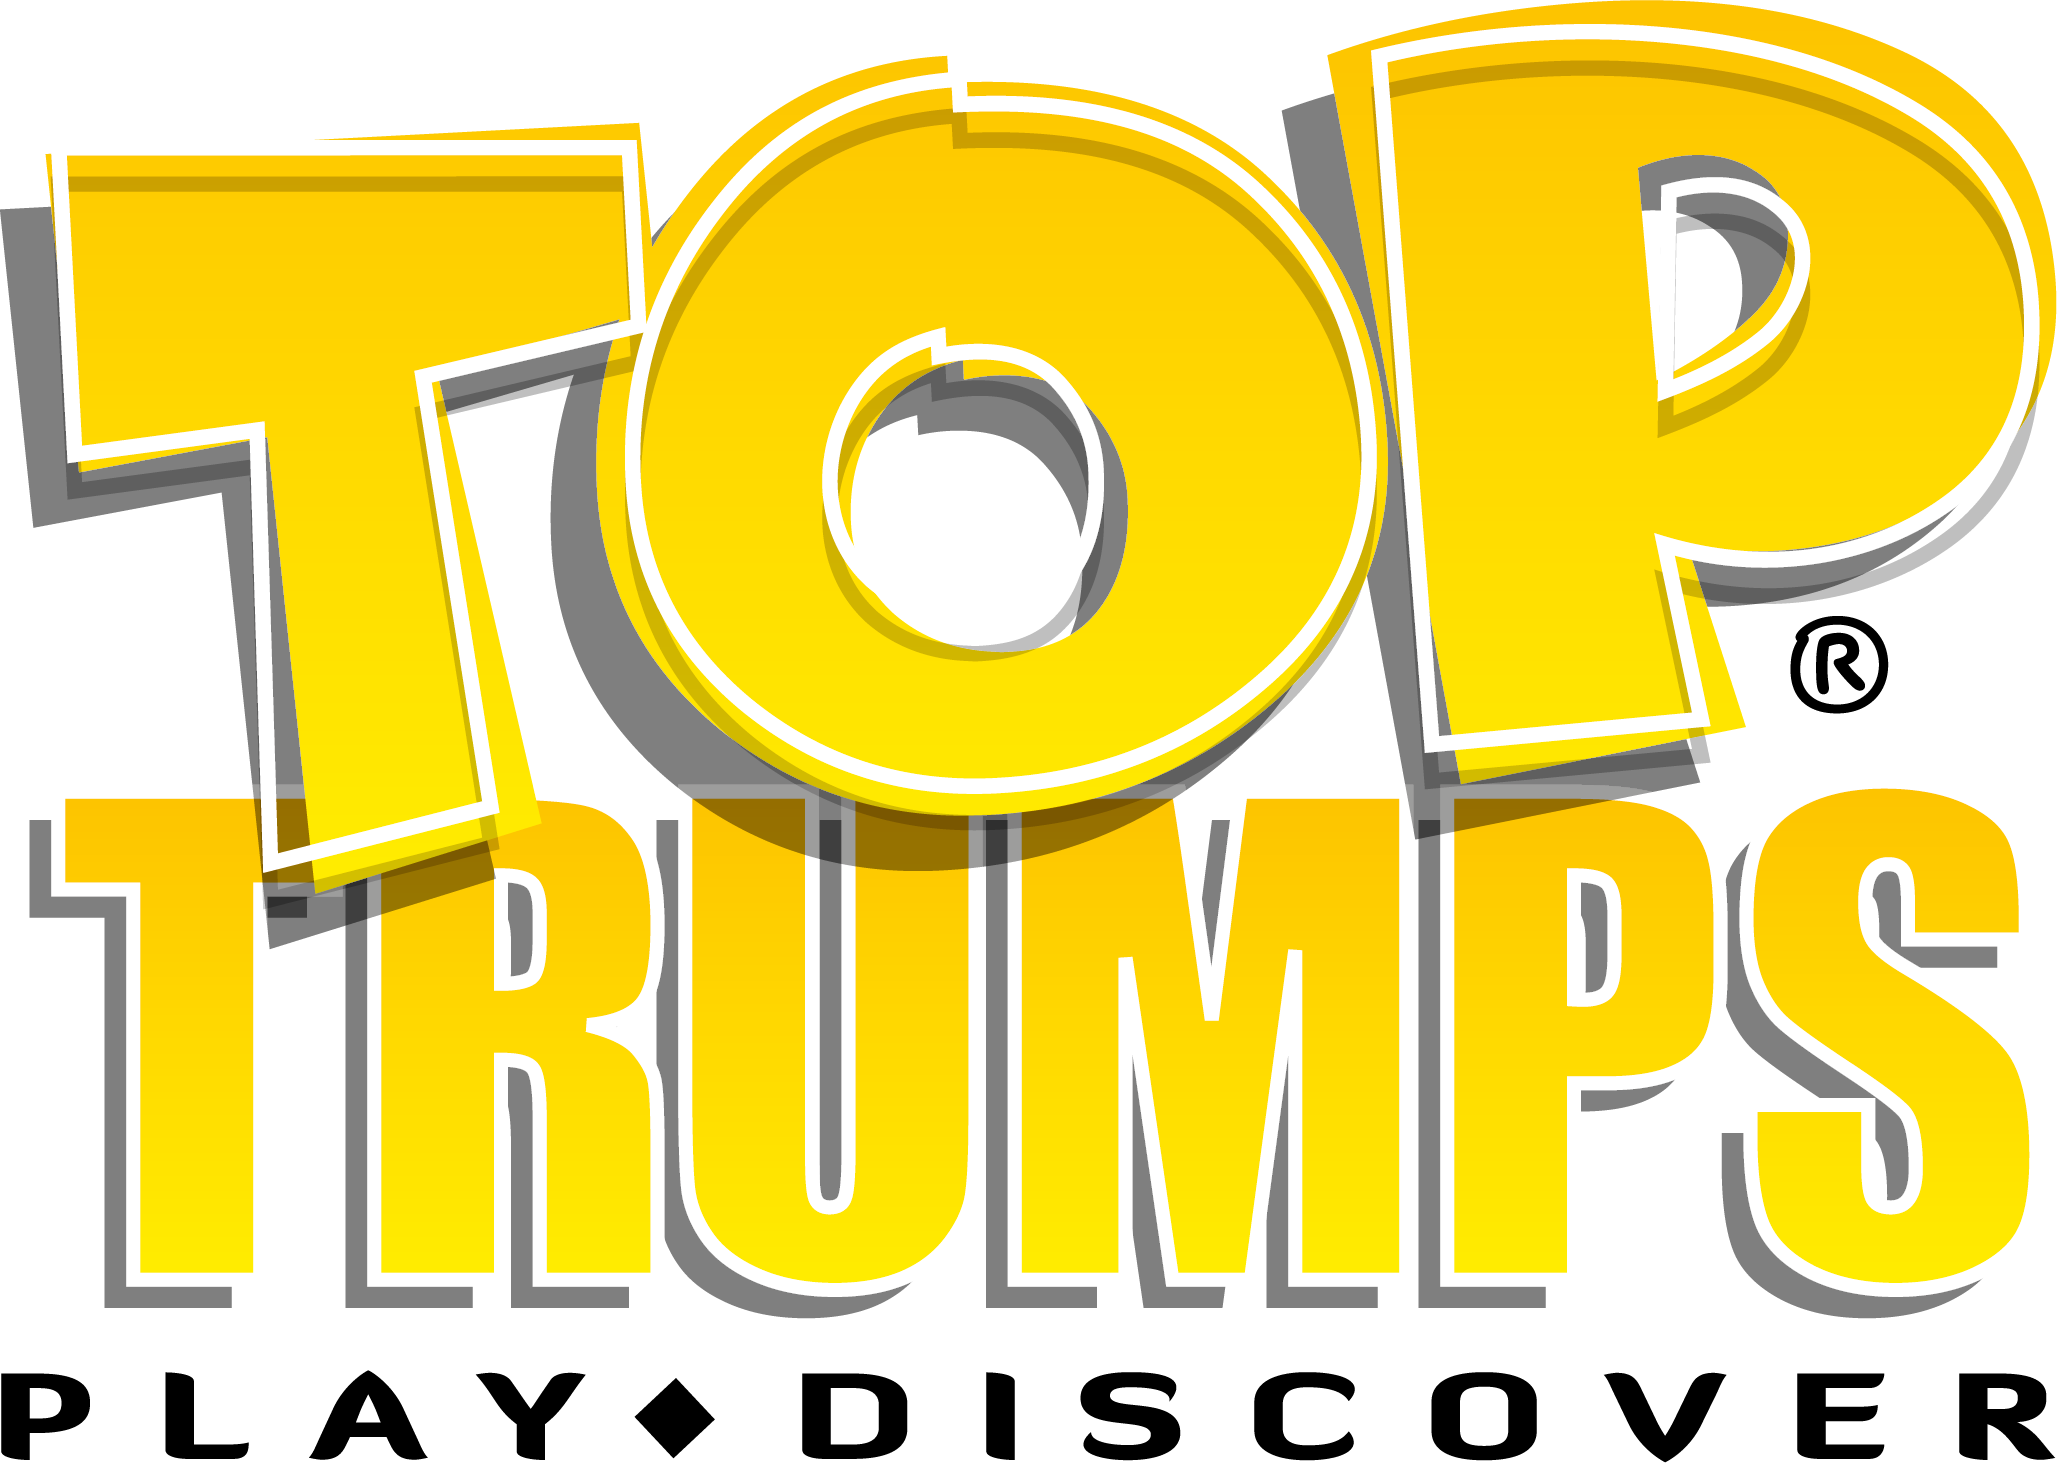 Top trumps logo